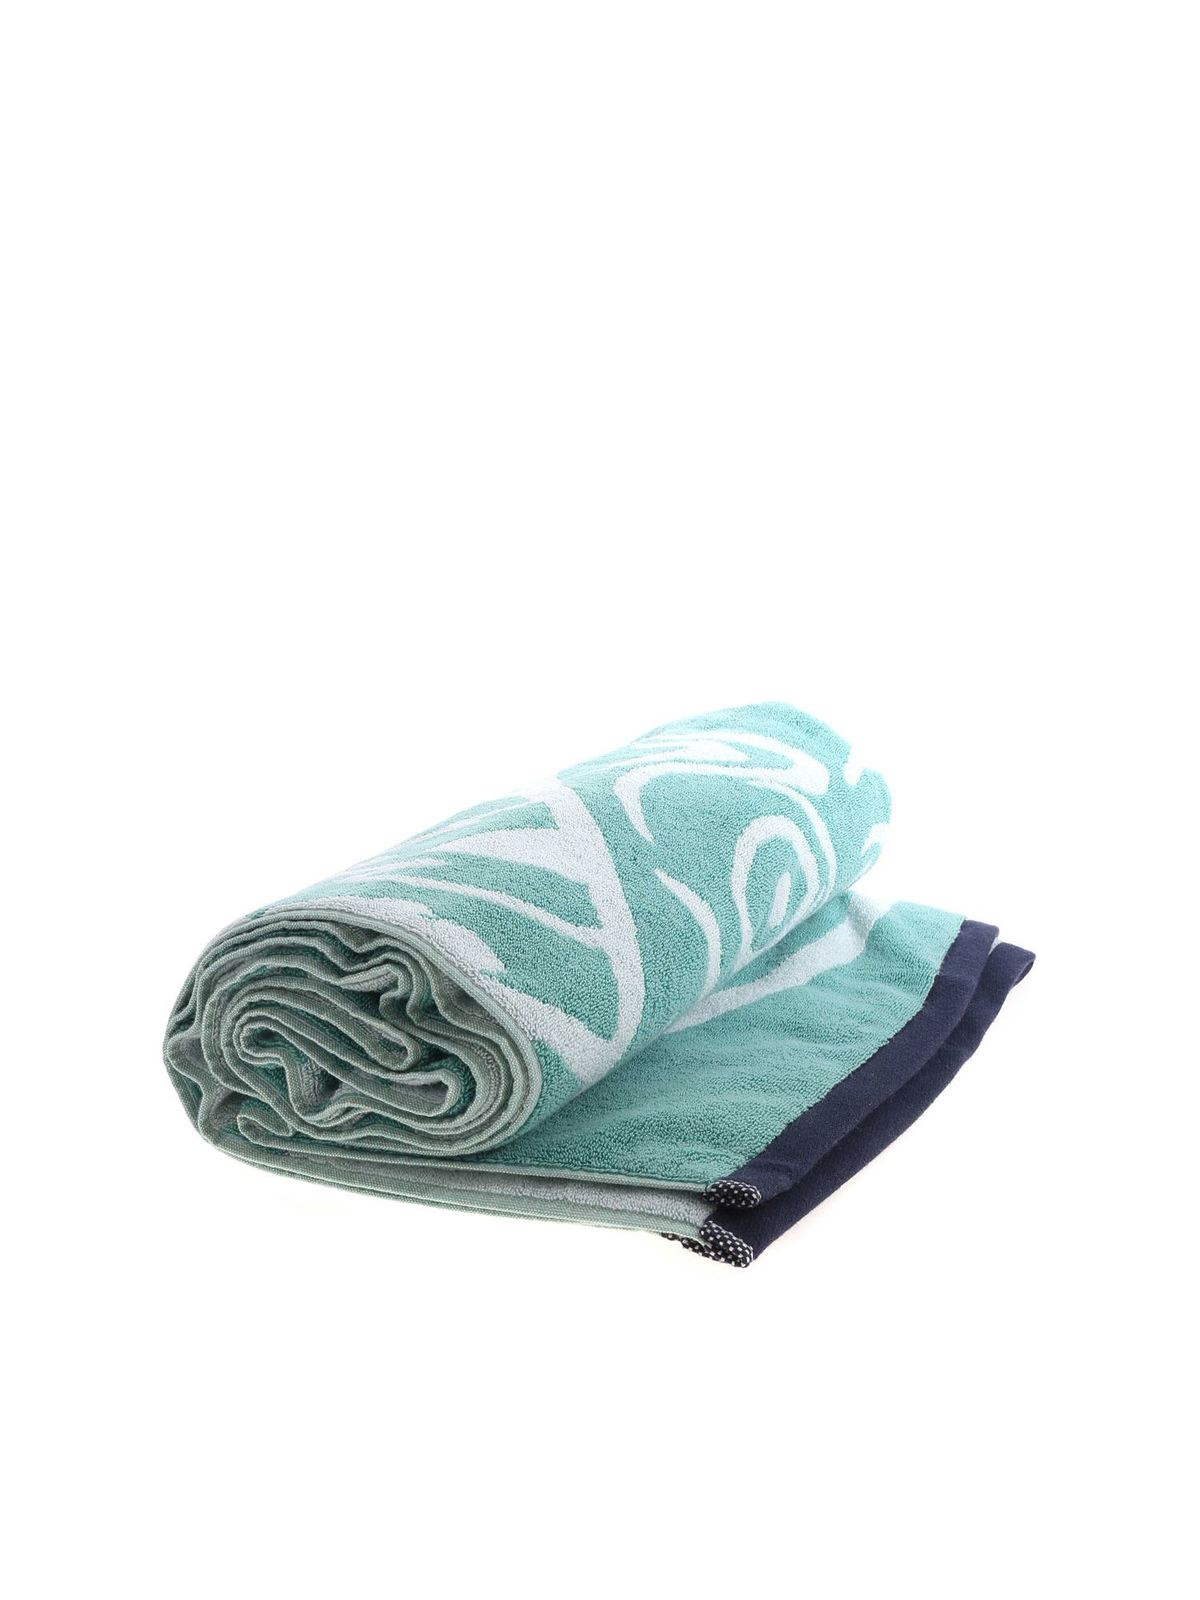 Kenzo TIGER PRINT BEACH TOWEL IN AQUAMARINE COLOR